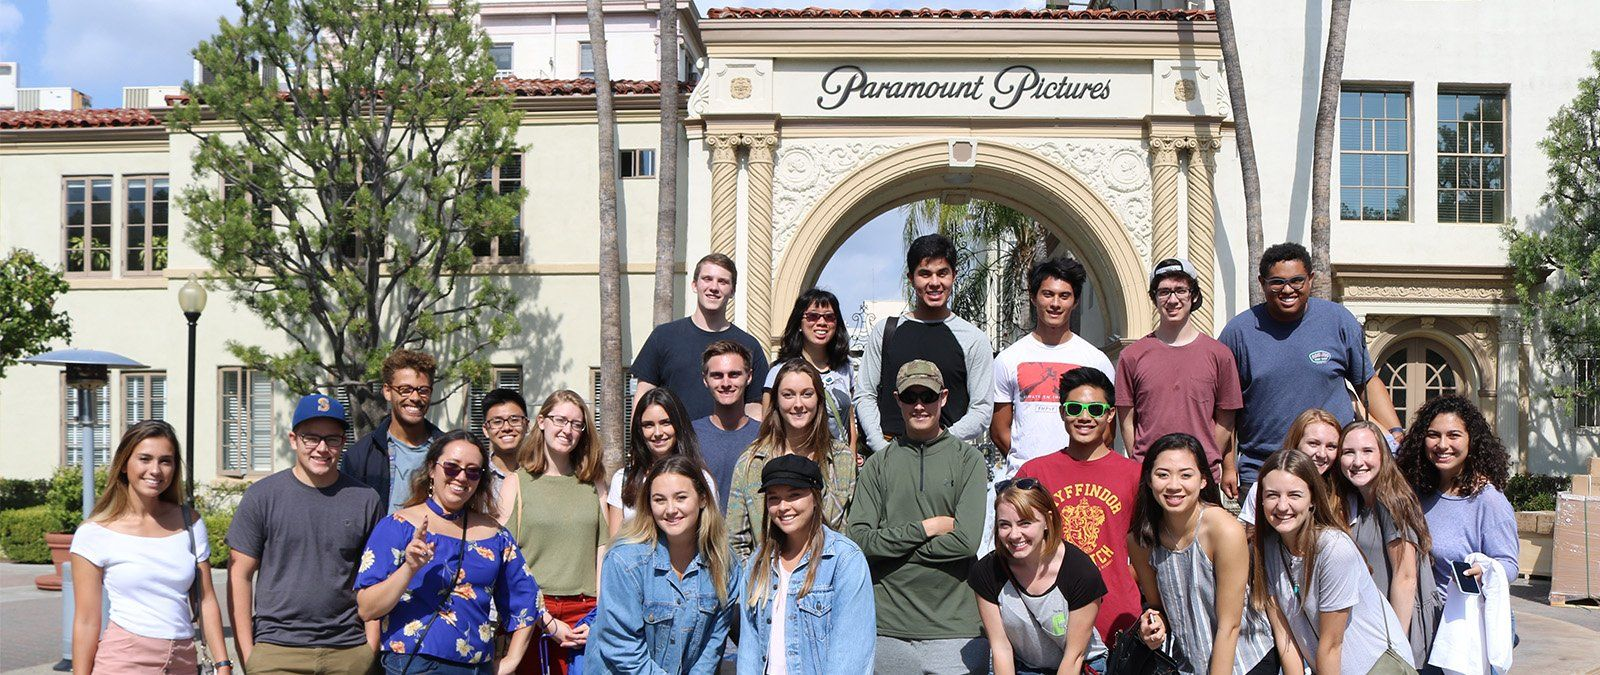 A media communication class poses for a group photo in front of Paramount Studios during a class trip.